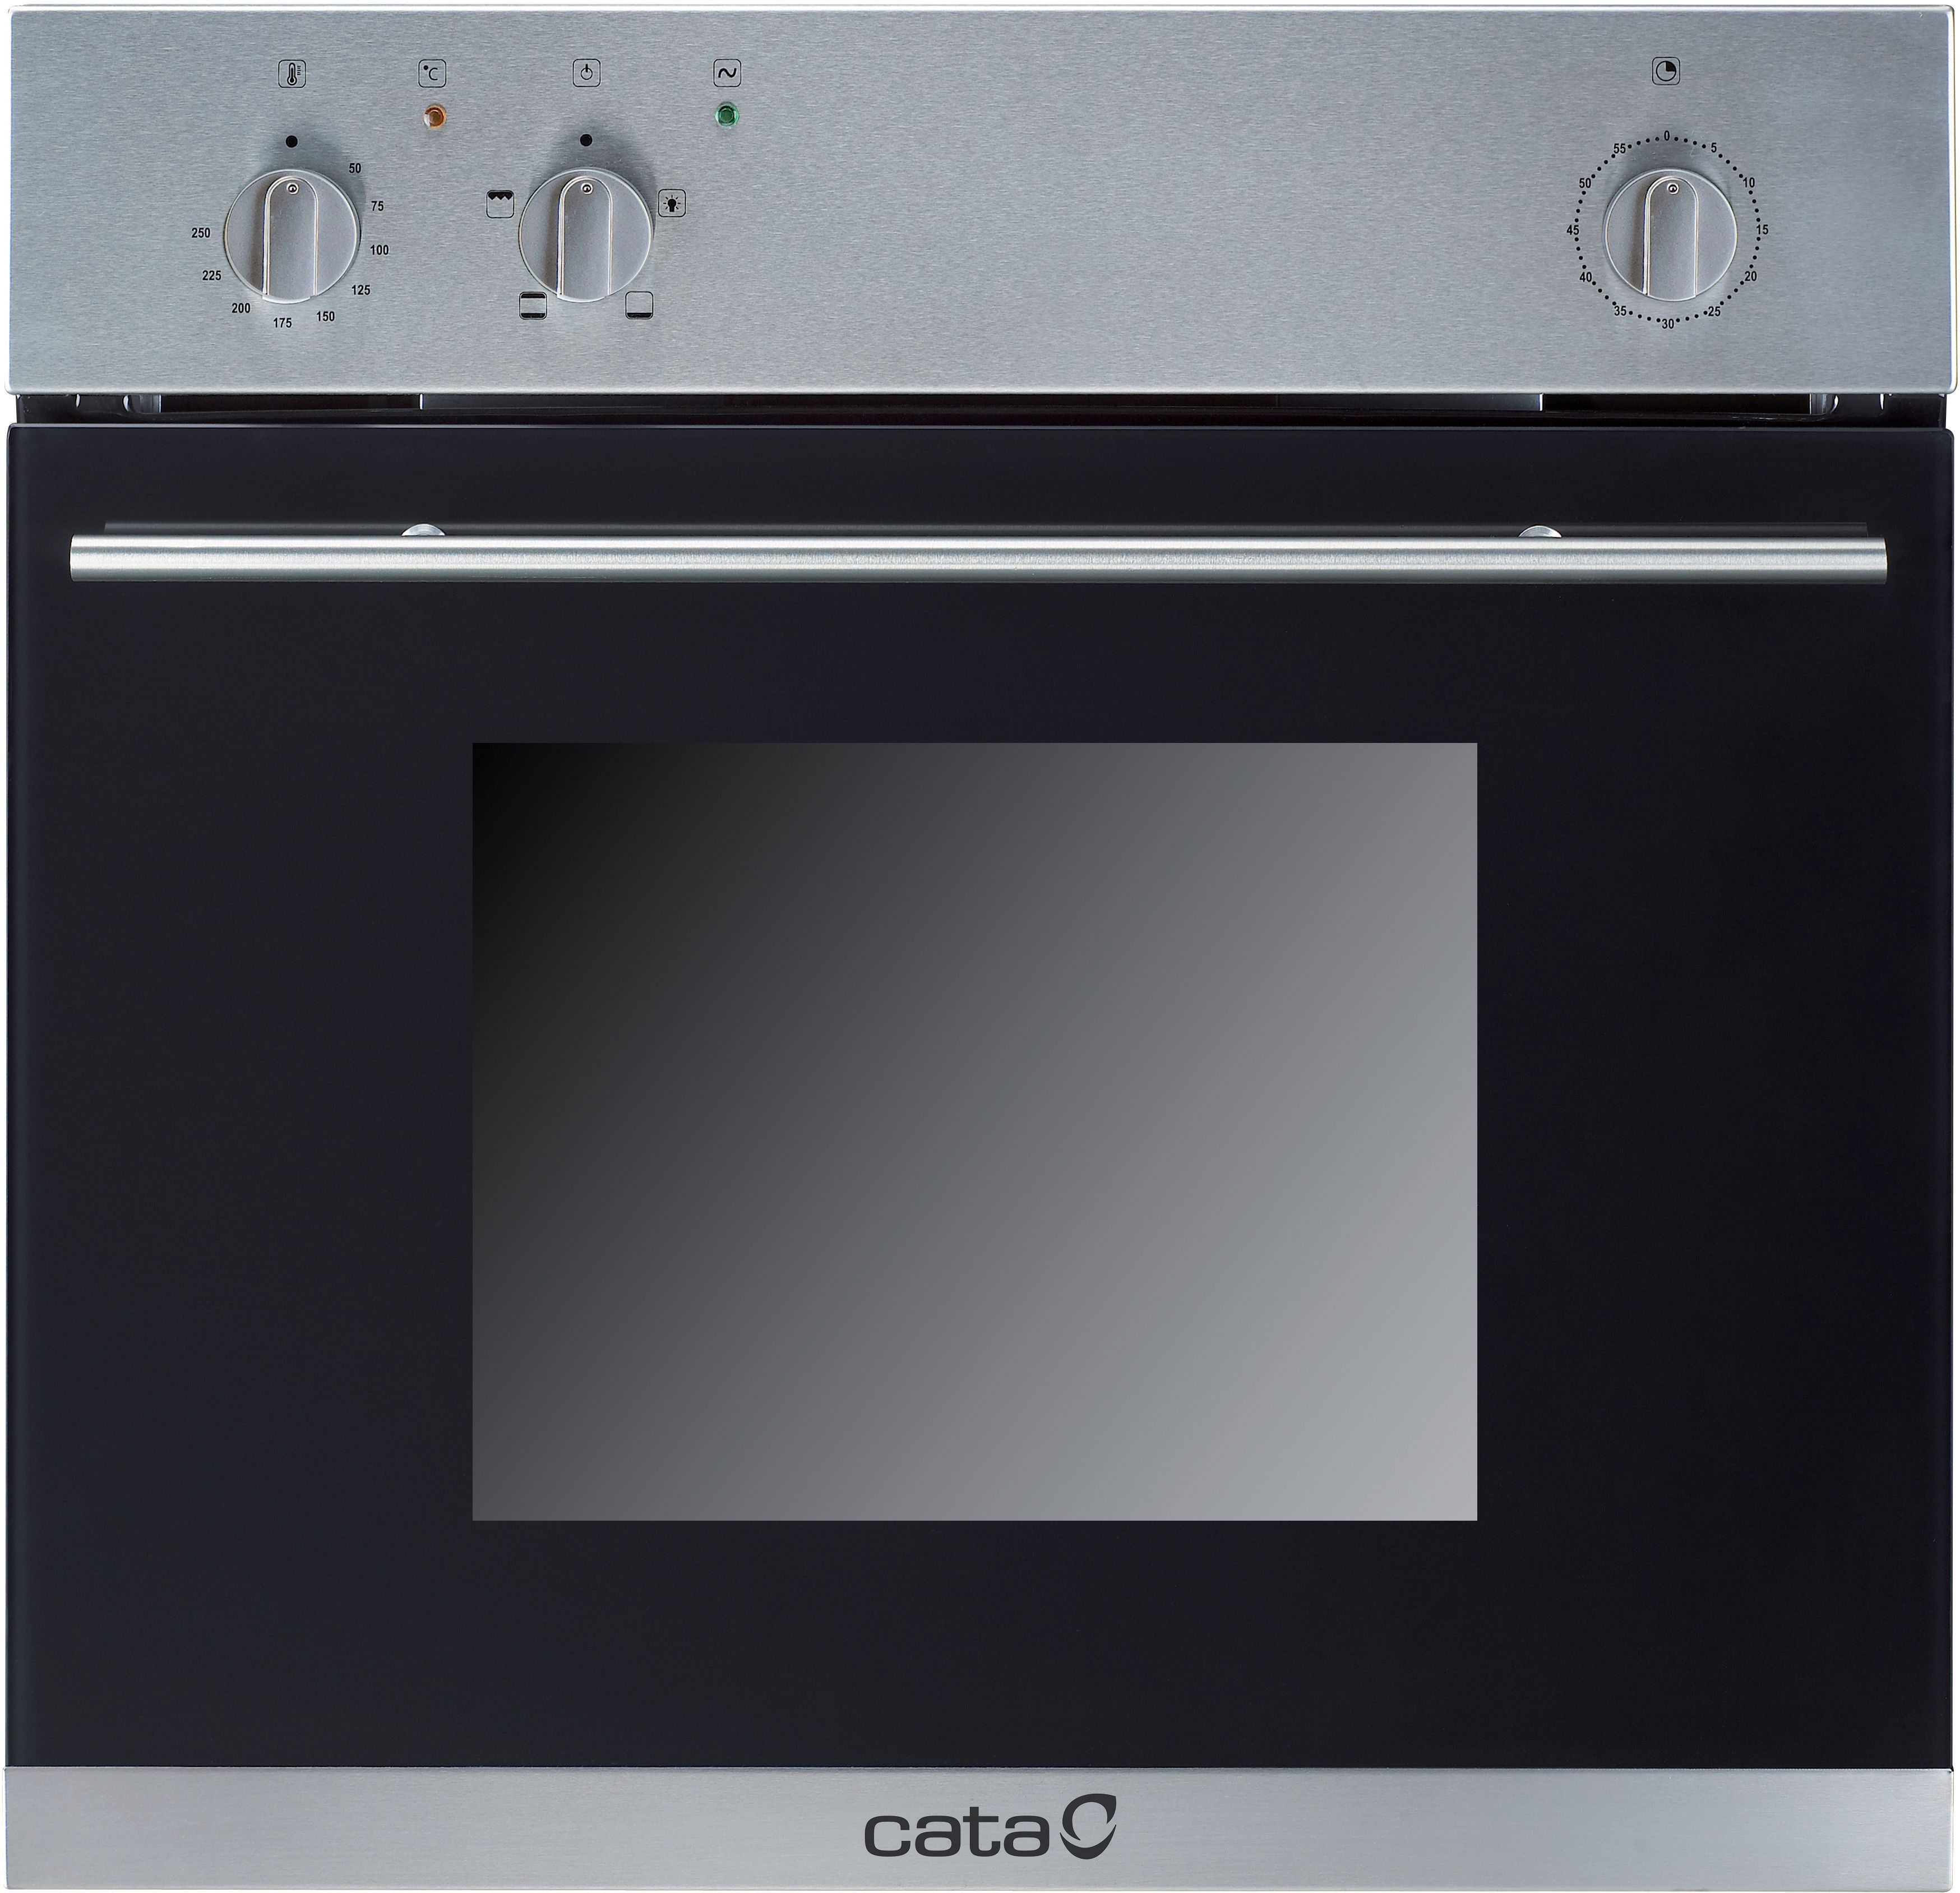 Cata Eosv2 Electric Single Oven Departments Tradepoint